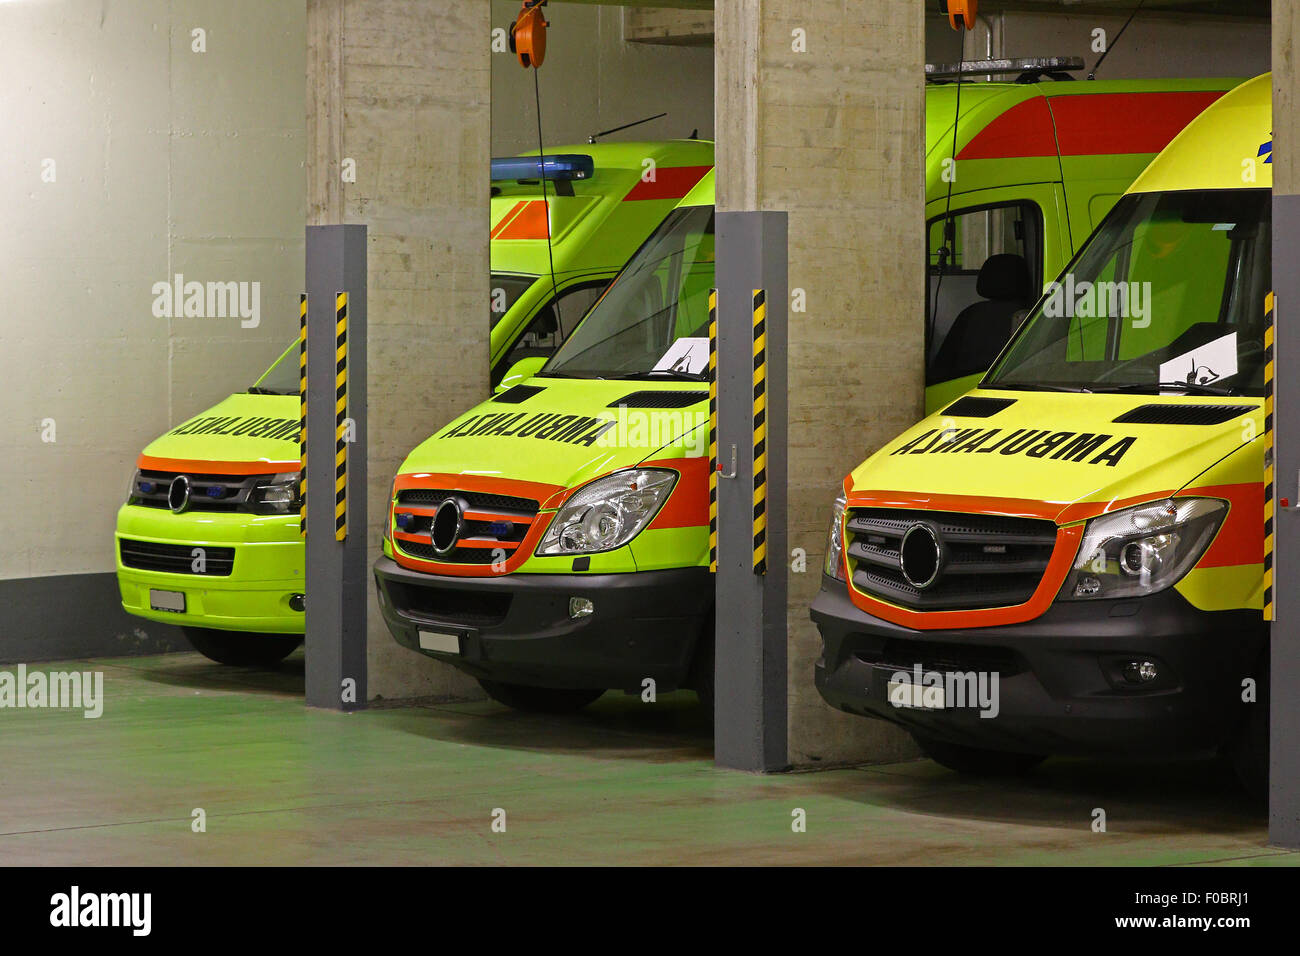 The night shift: ambulance service - Stock Image